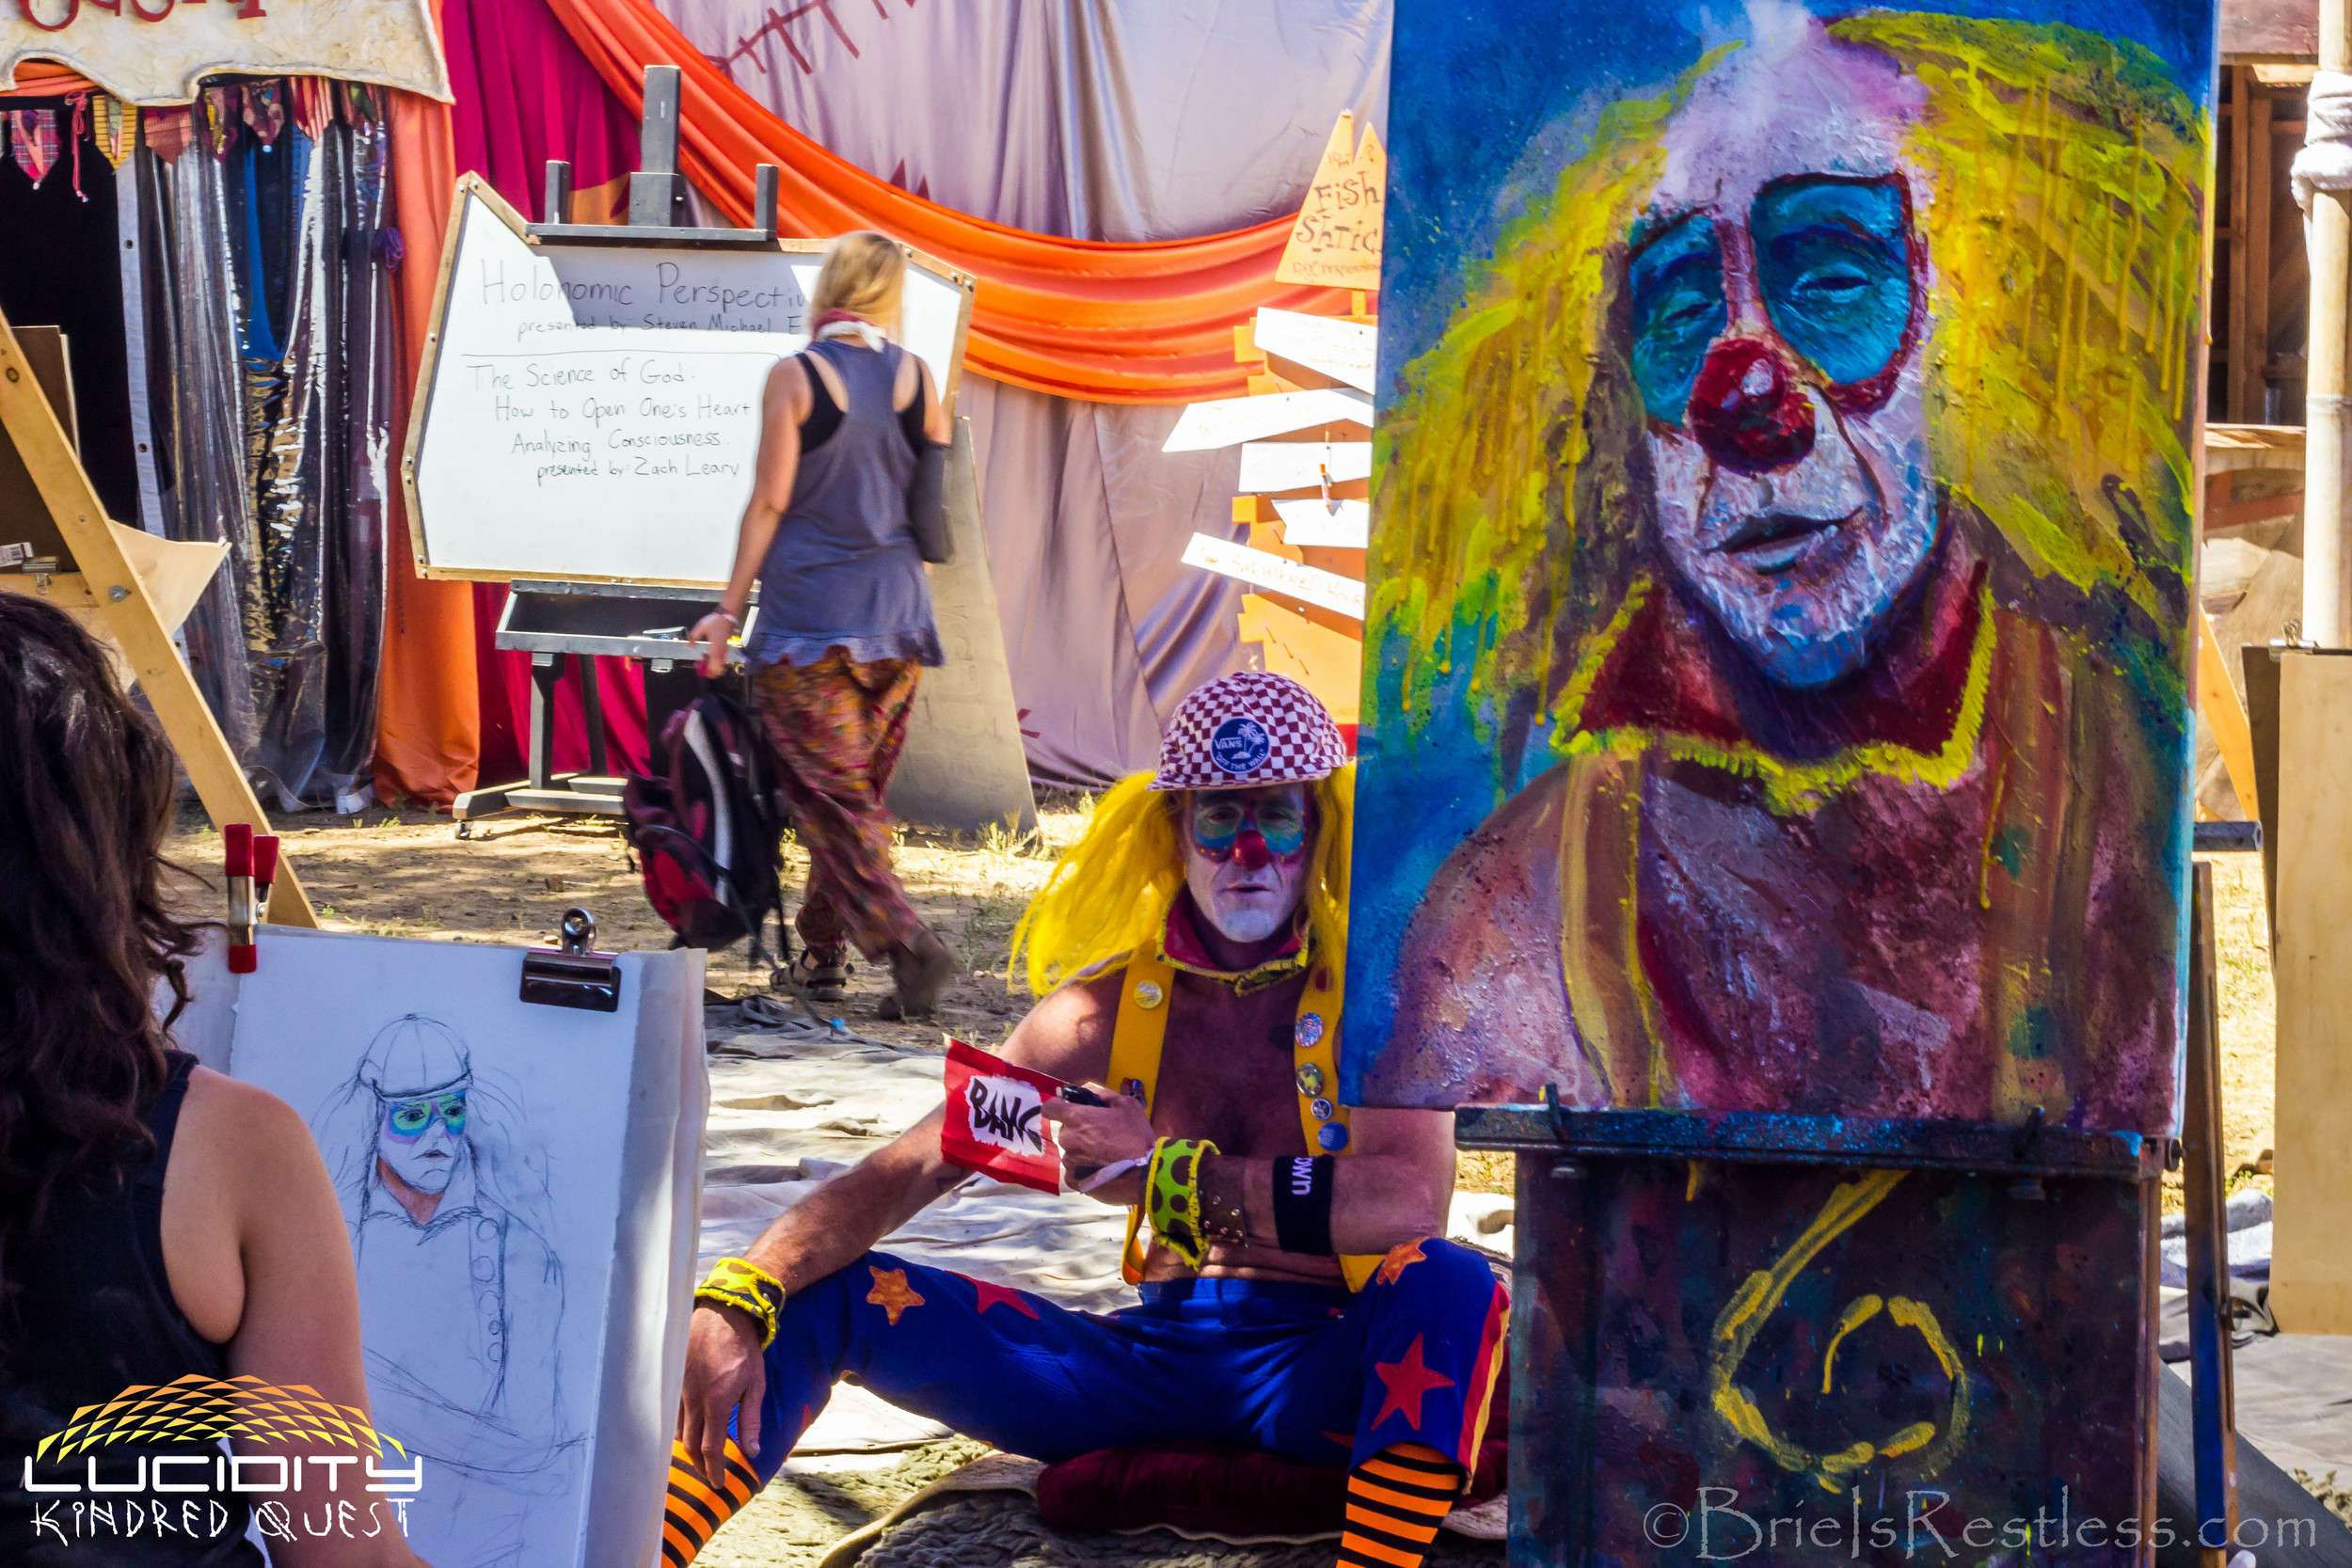 Art Temple - Live Clown Drawing - Painting - Luciditiy - Kindred Quest - April 2015 (1 of 1) (1 of 1).jpg